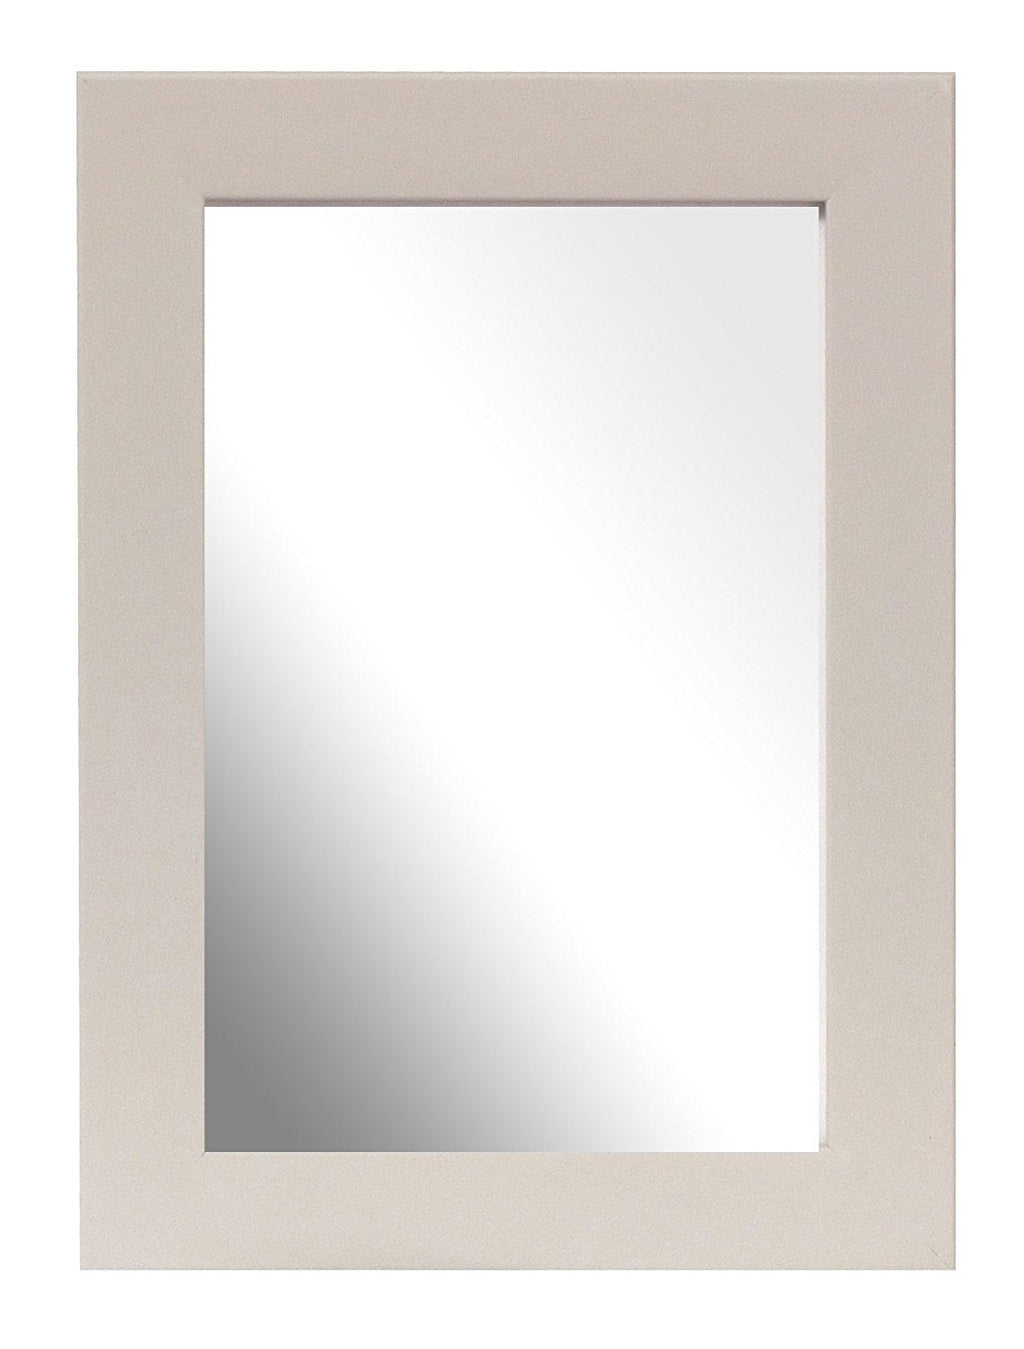 Inov8 British Made Traditional Mirror, 8x6-inch, Soft Grey